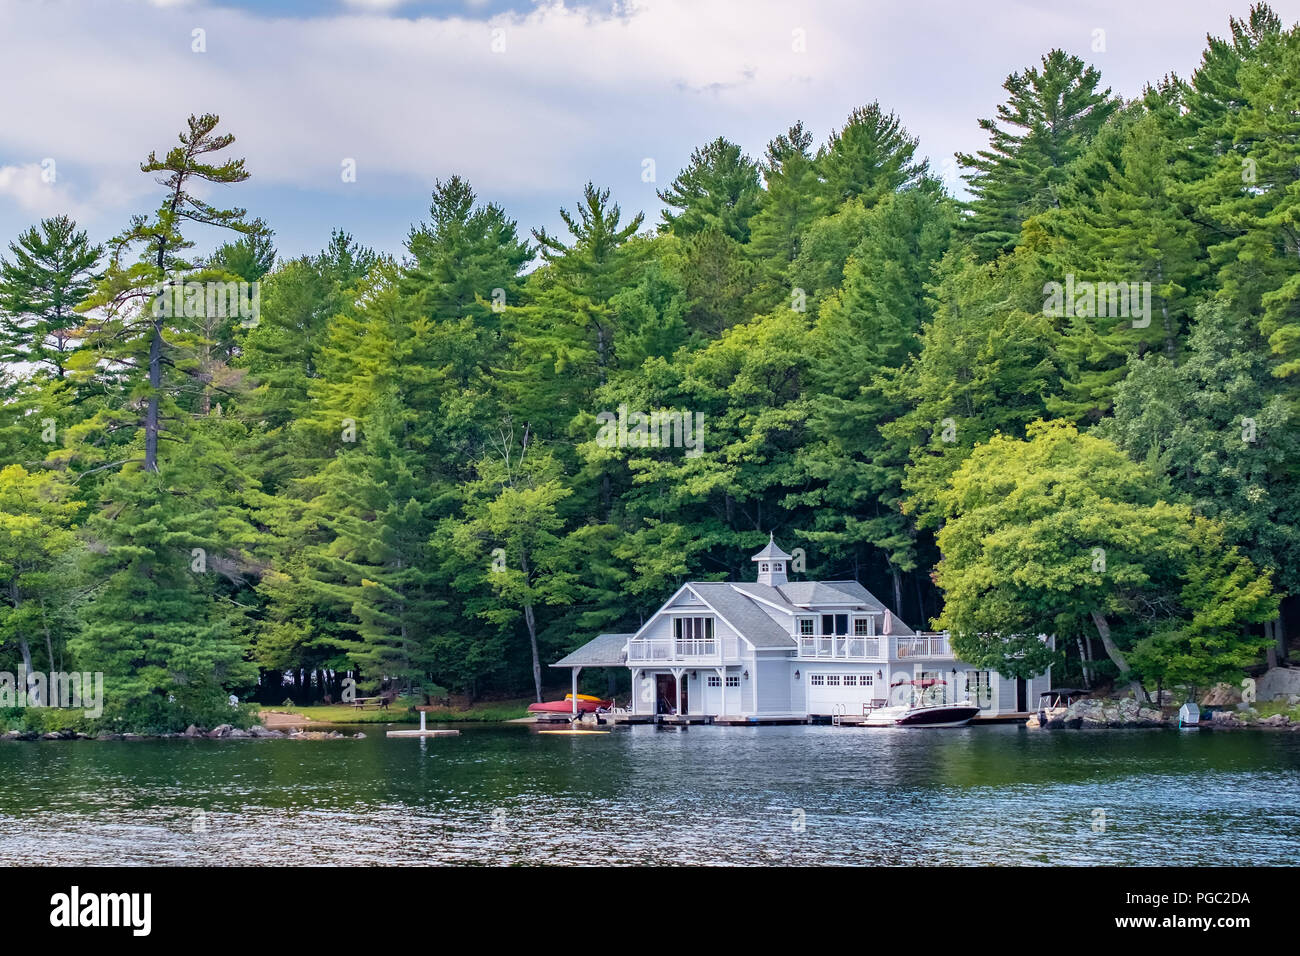 Beautiful boathouse on Lake Muskoka.  This area of Ontario Canada is known a cottage country because of the many summer homes in the region. - Stock Image